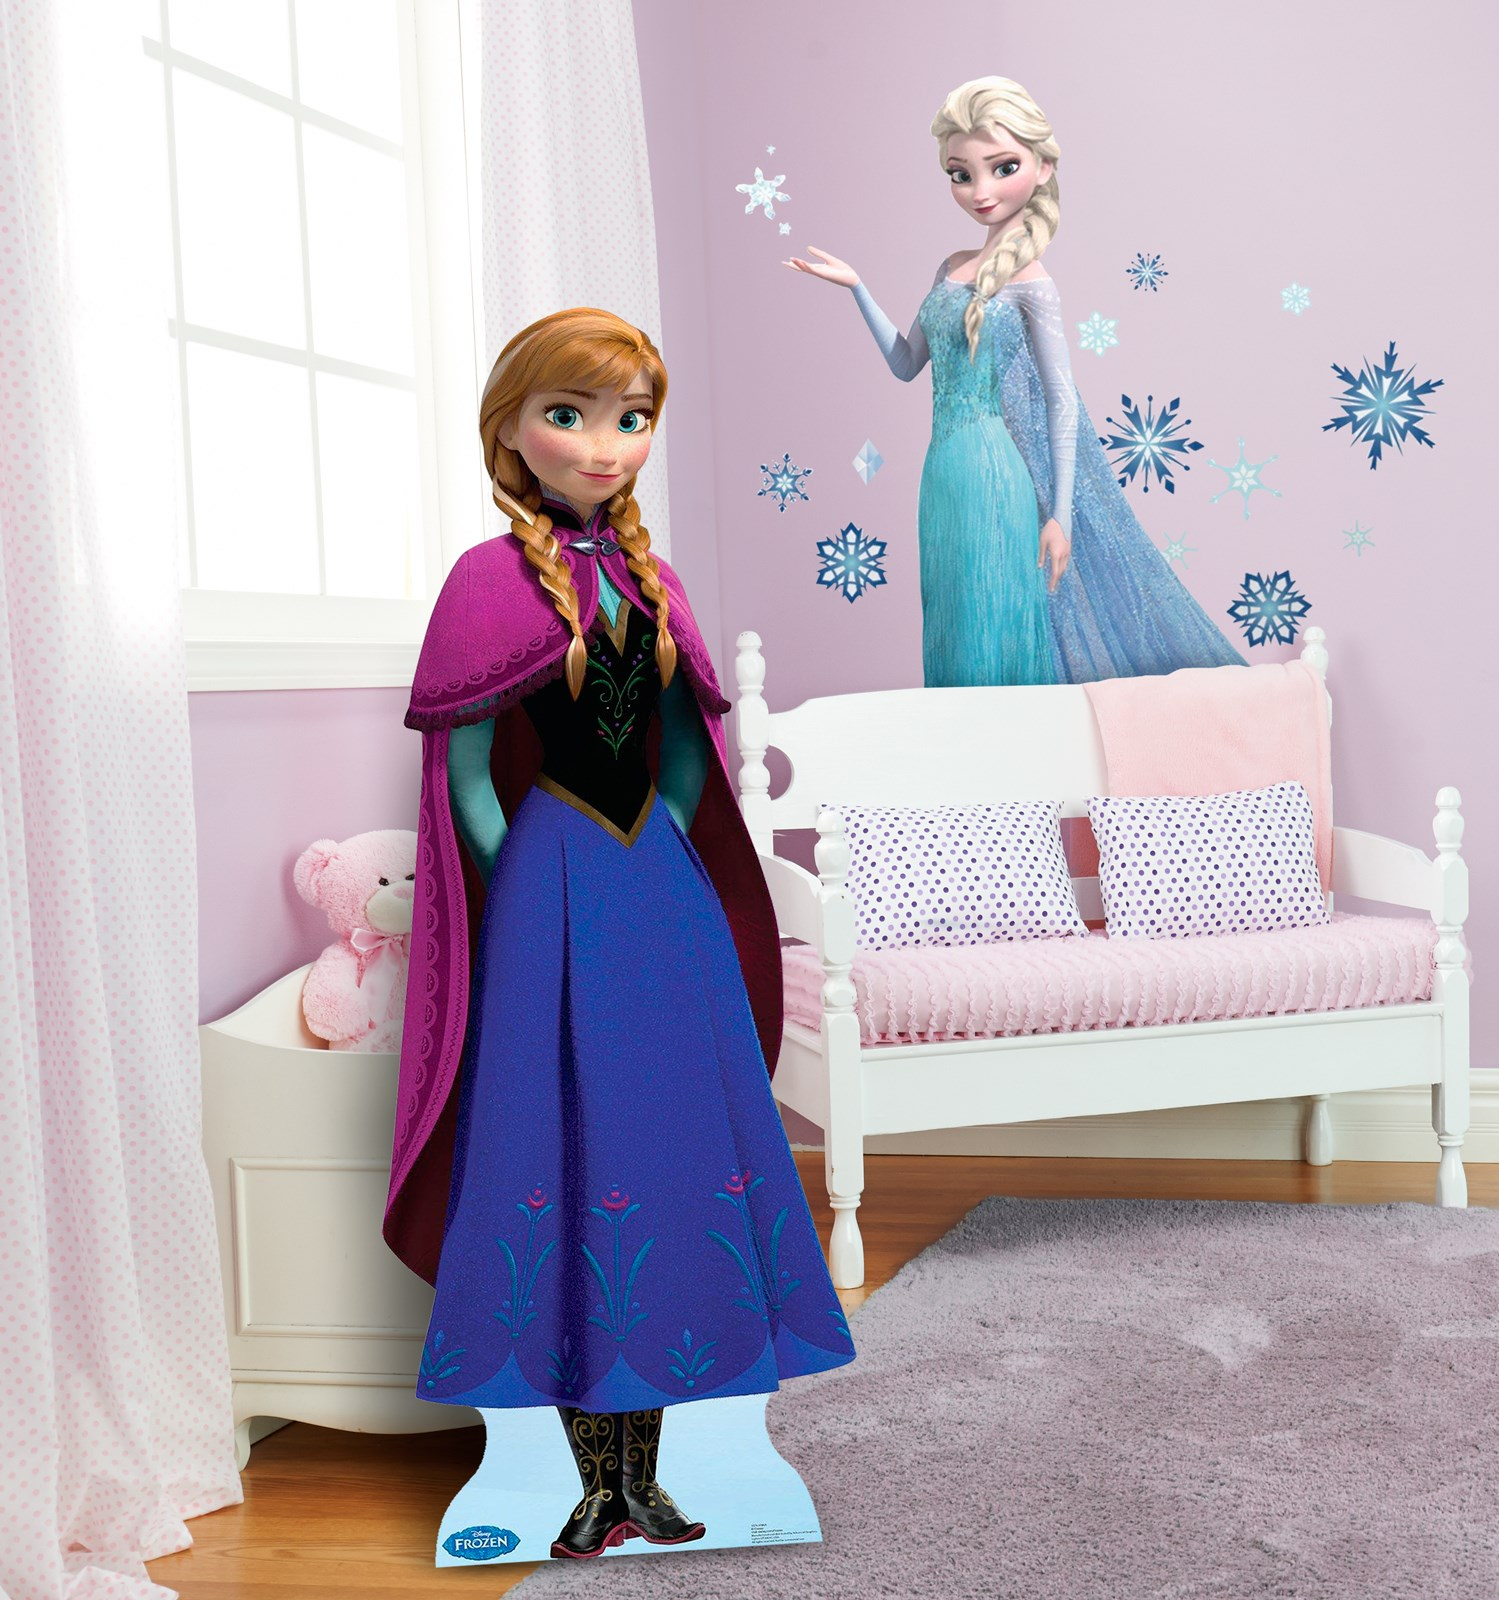 Frozen Wall Decor Kit : Disney frozen wall decals and standup kit